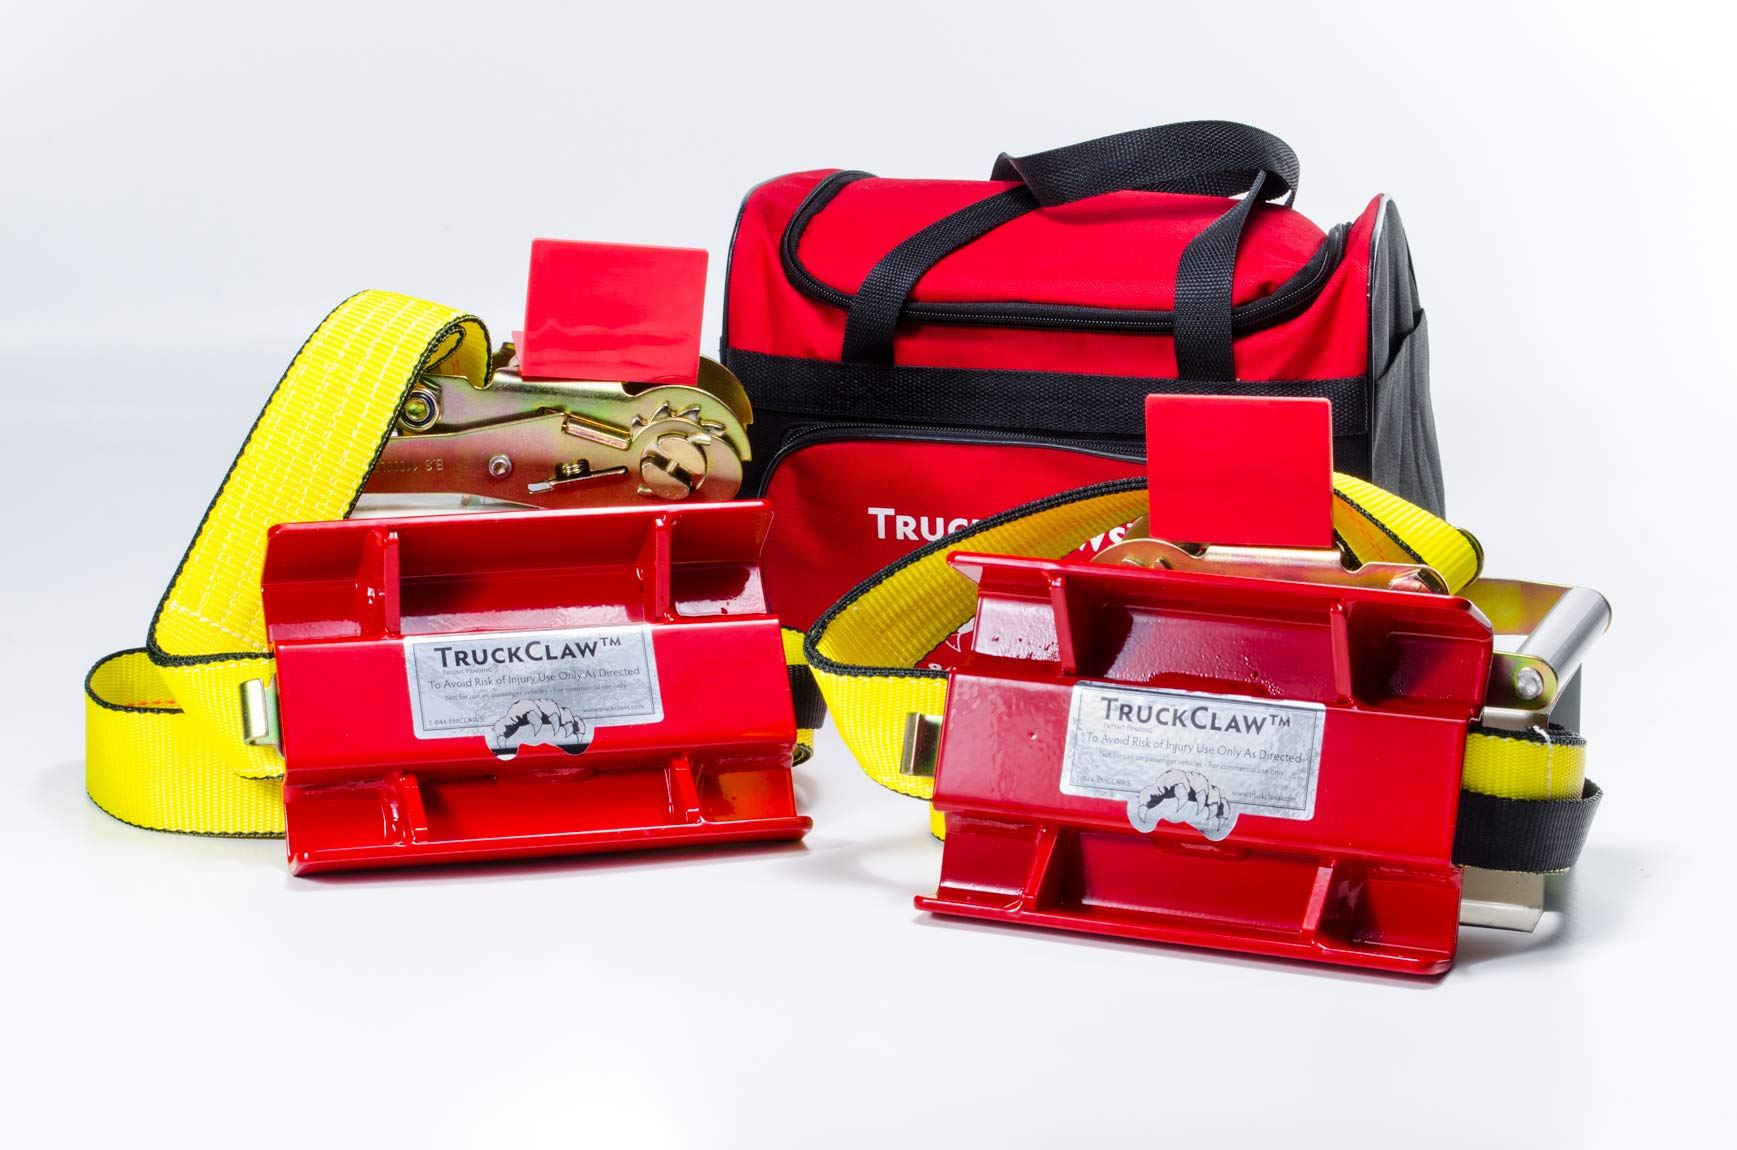 TruckClaws Commercial Truck Emergency Traction Aid Kit– (2) traction cleats, (2) 54 inch long straps, (2) heavy duty ratchets and (1) carry bag. For big rigs and large trucks with a GVW over 35,000lbs